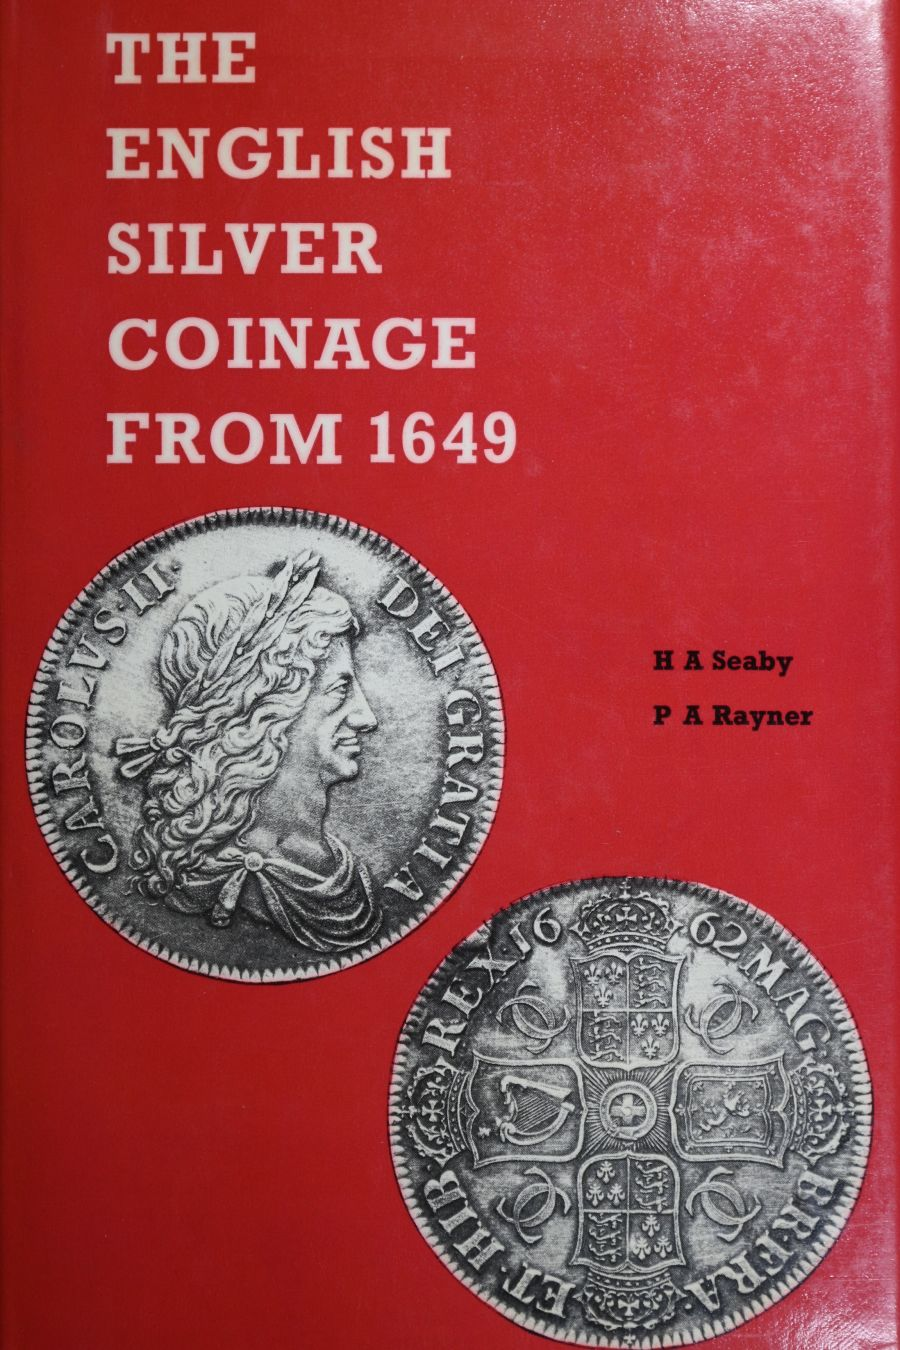 The English Silver Coinage from 1649, H. A. Seaby and P. A. Rayner, Fourth revised edition